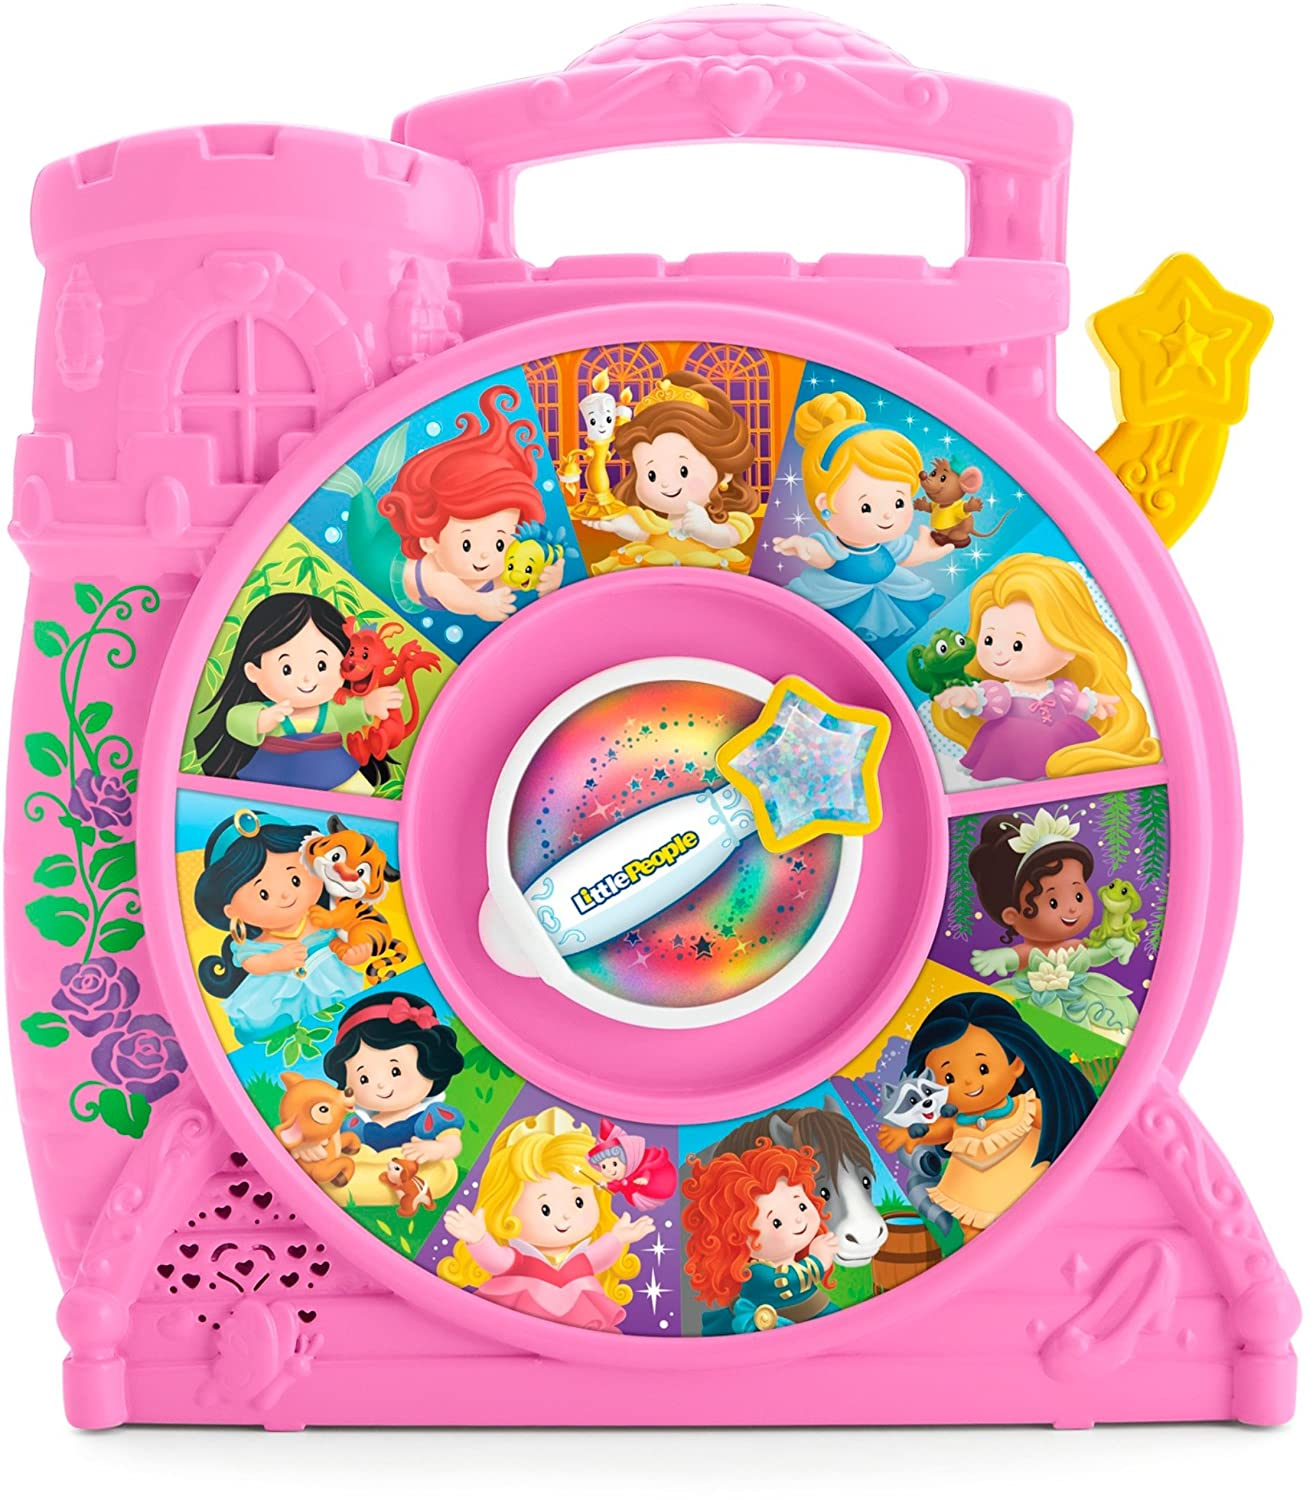 Fisher-Price Little People Disney Princess See 'n Say Playset Toy Fisher Price FKW21